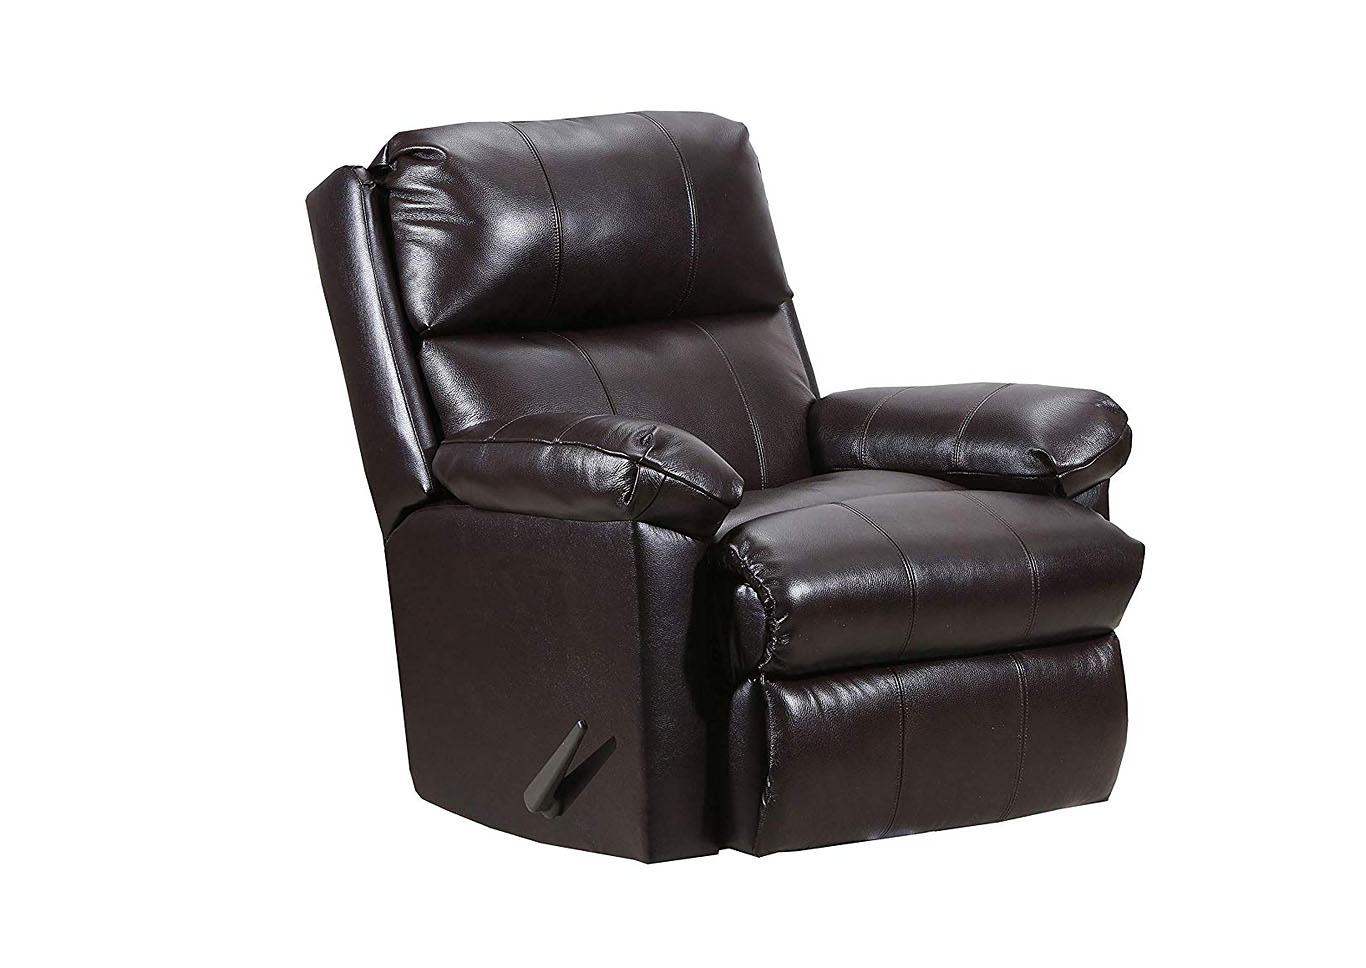 Lane Home Furnishings Mindy Soft Touch Rocker Recliner Bark,Instore